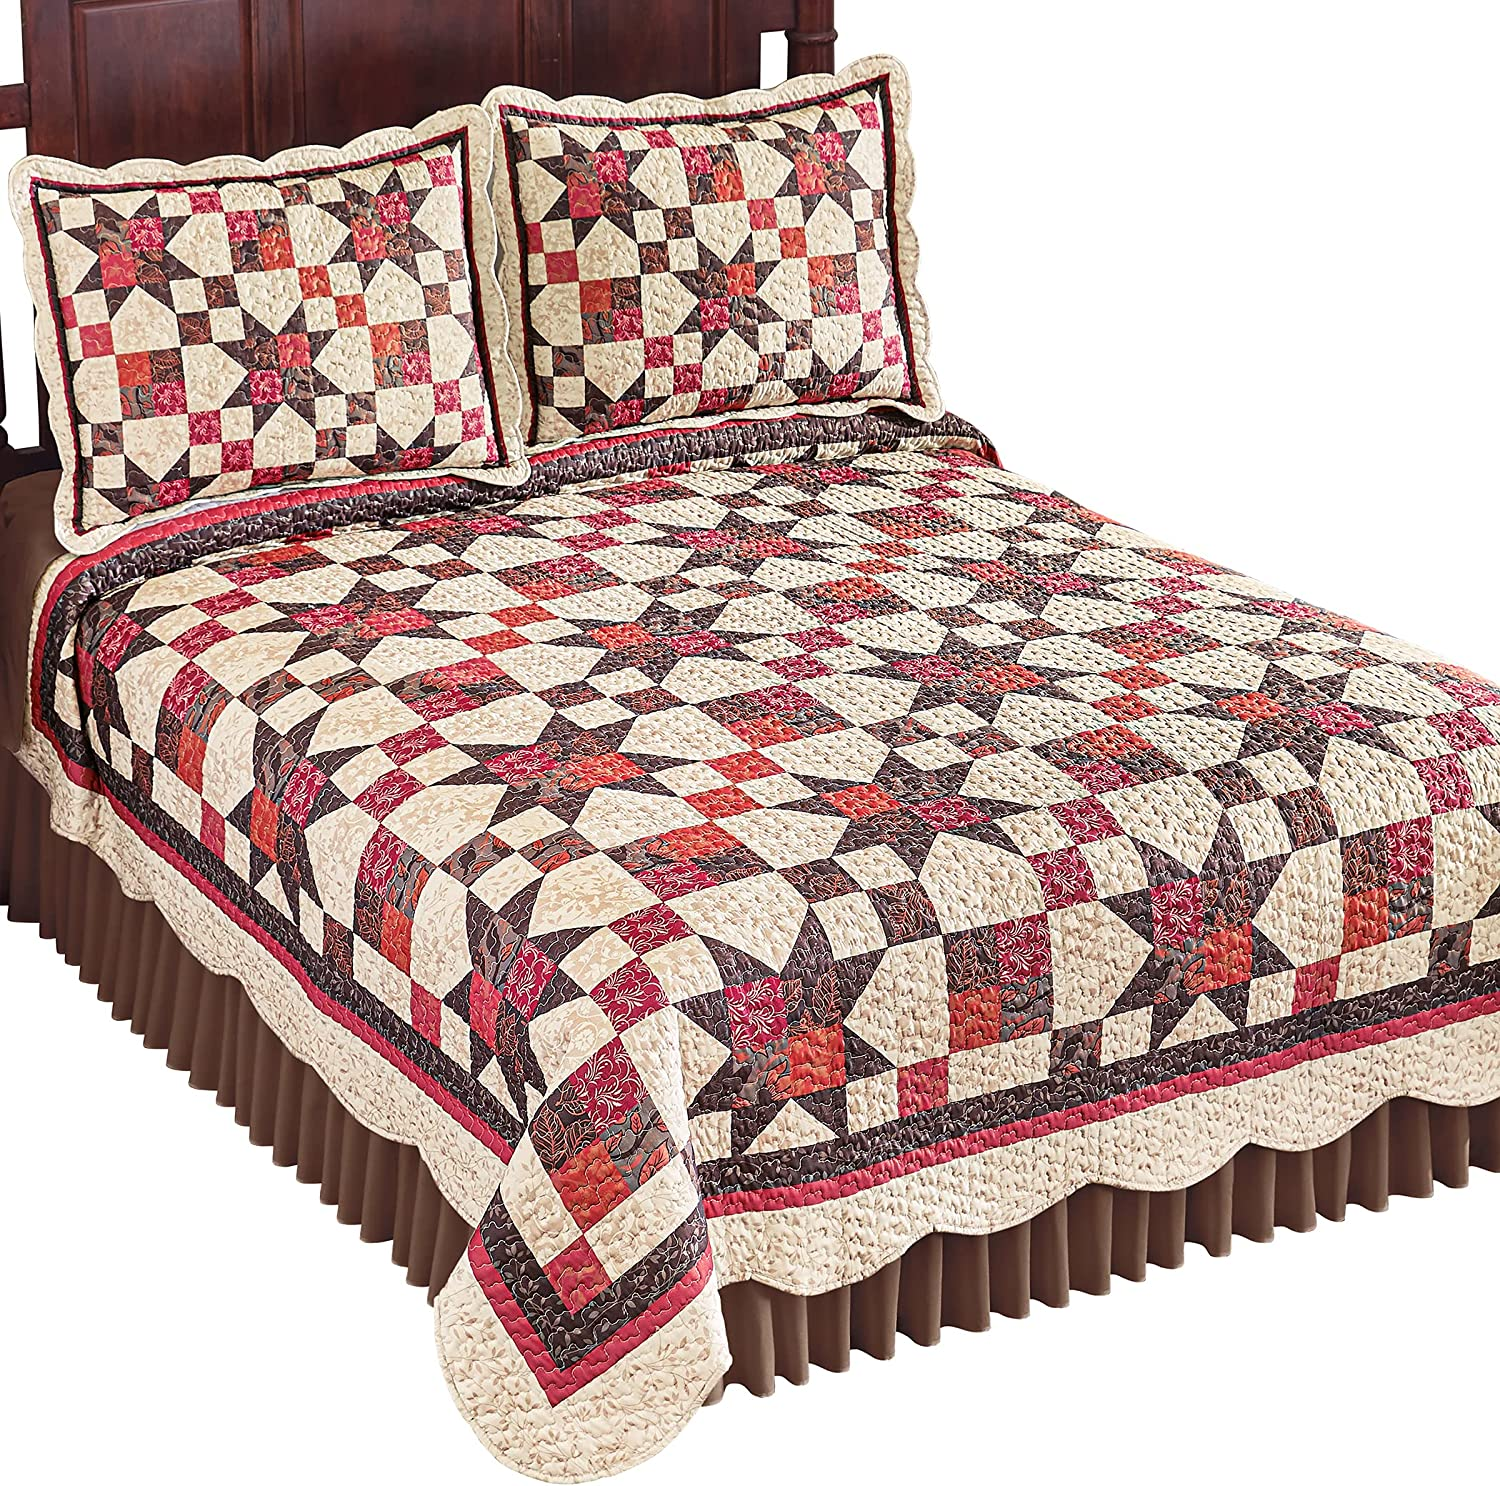 Reversible Classic Now on sale Star Patch Ranking TOP1 Quilt Taupe